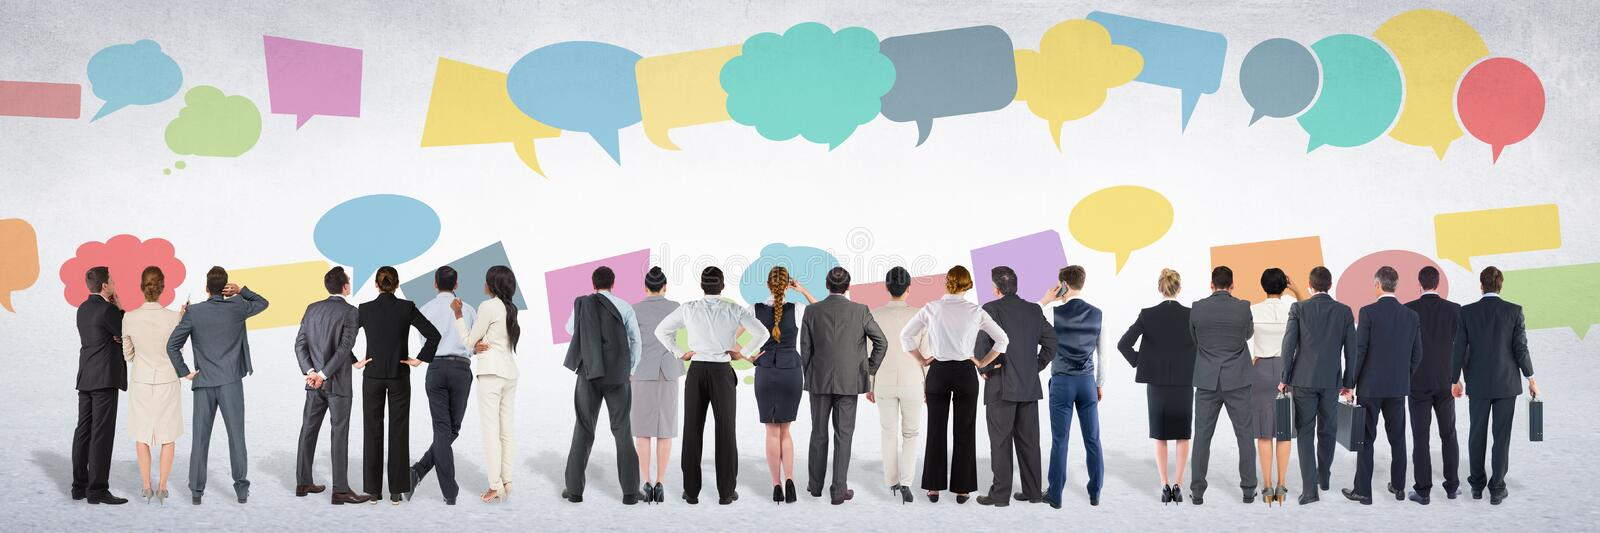 Group of business people standing in front of colorful chat bubbles stock images